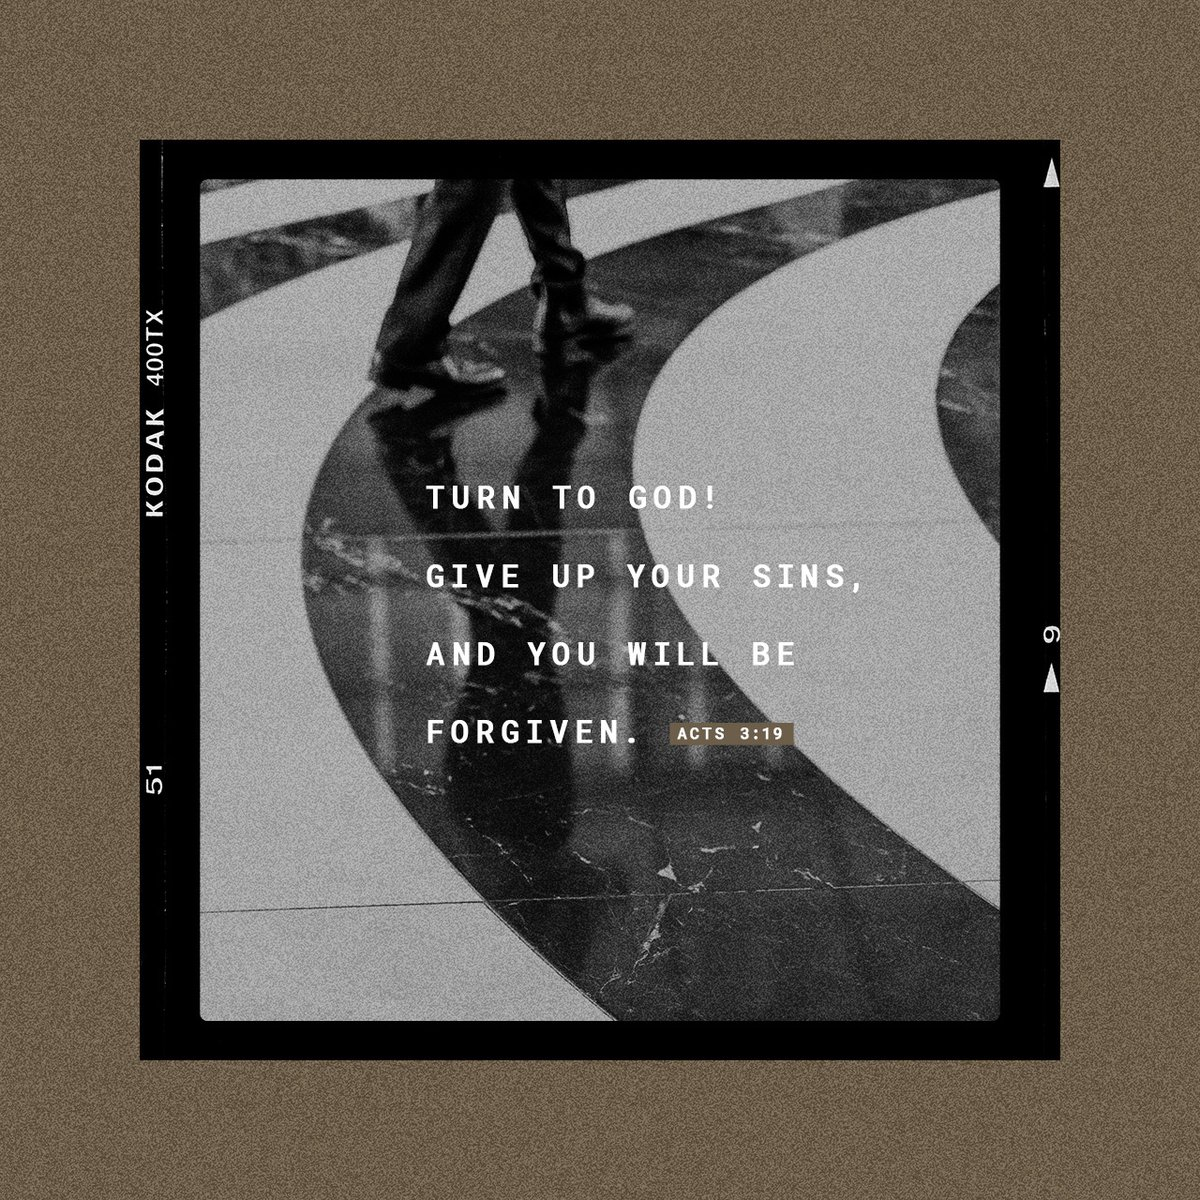 So turn to God! Give up your sins, and you will be forgiven.